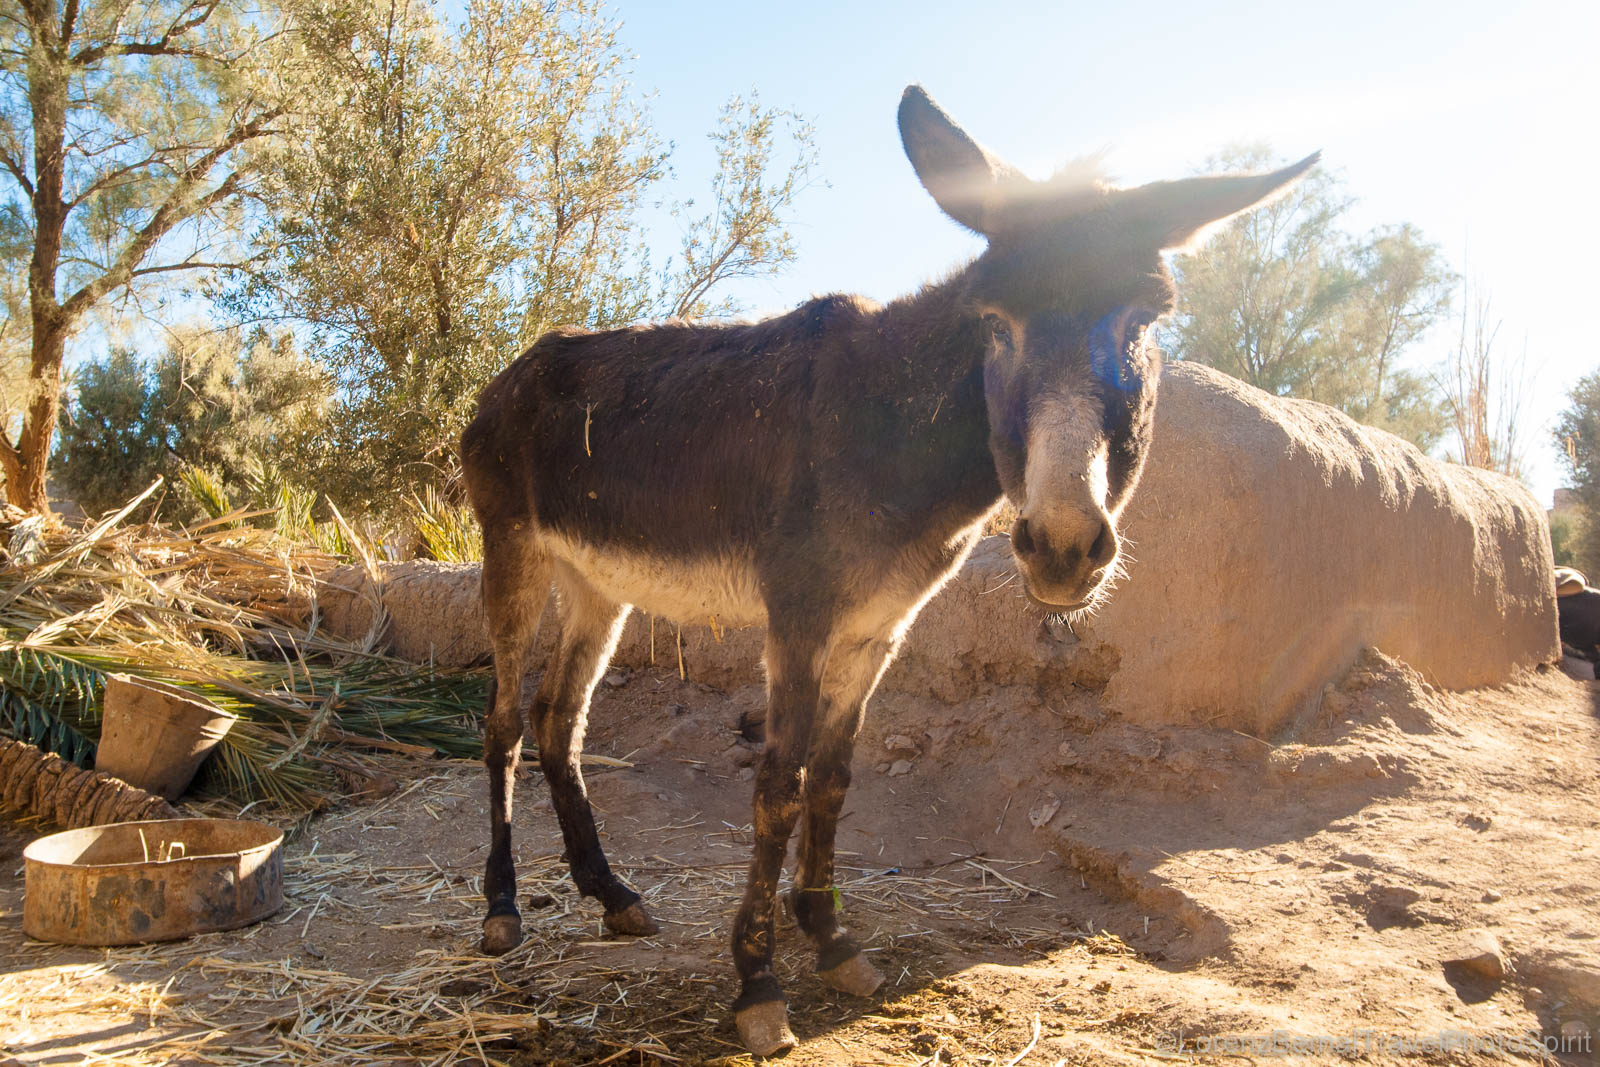 Donkey in the backlight in Skoura, Morocco